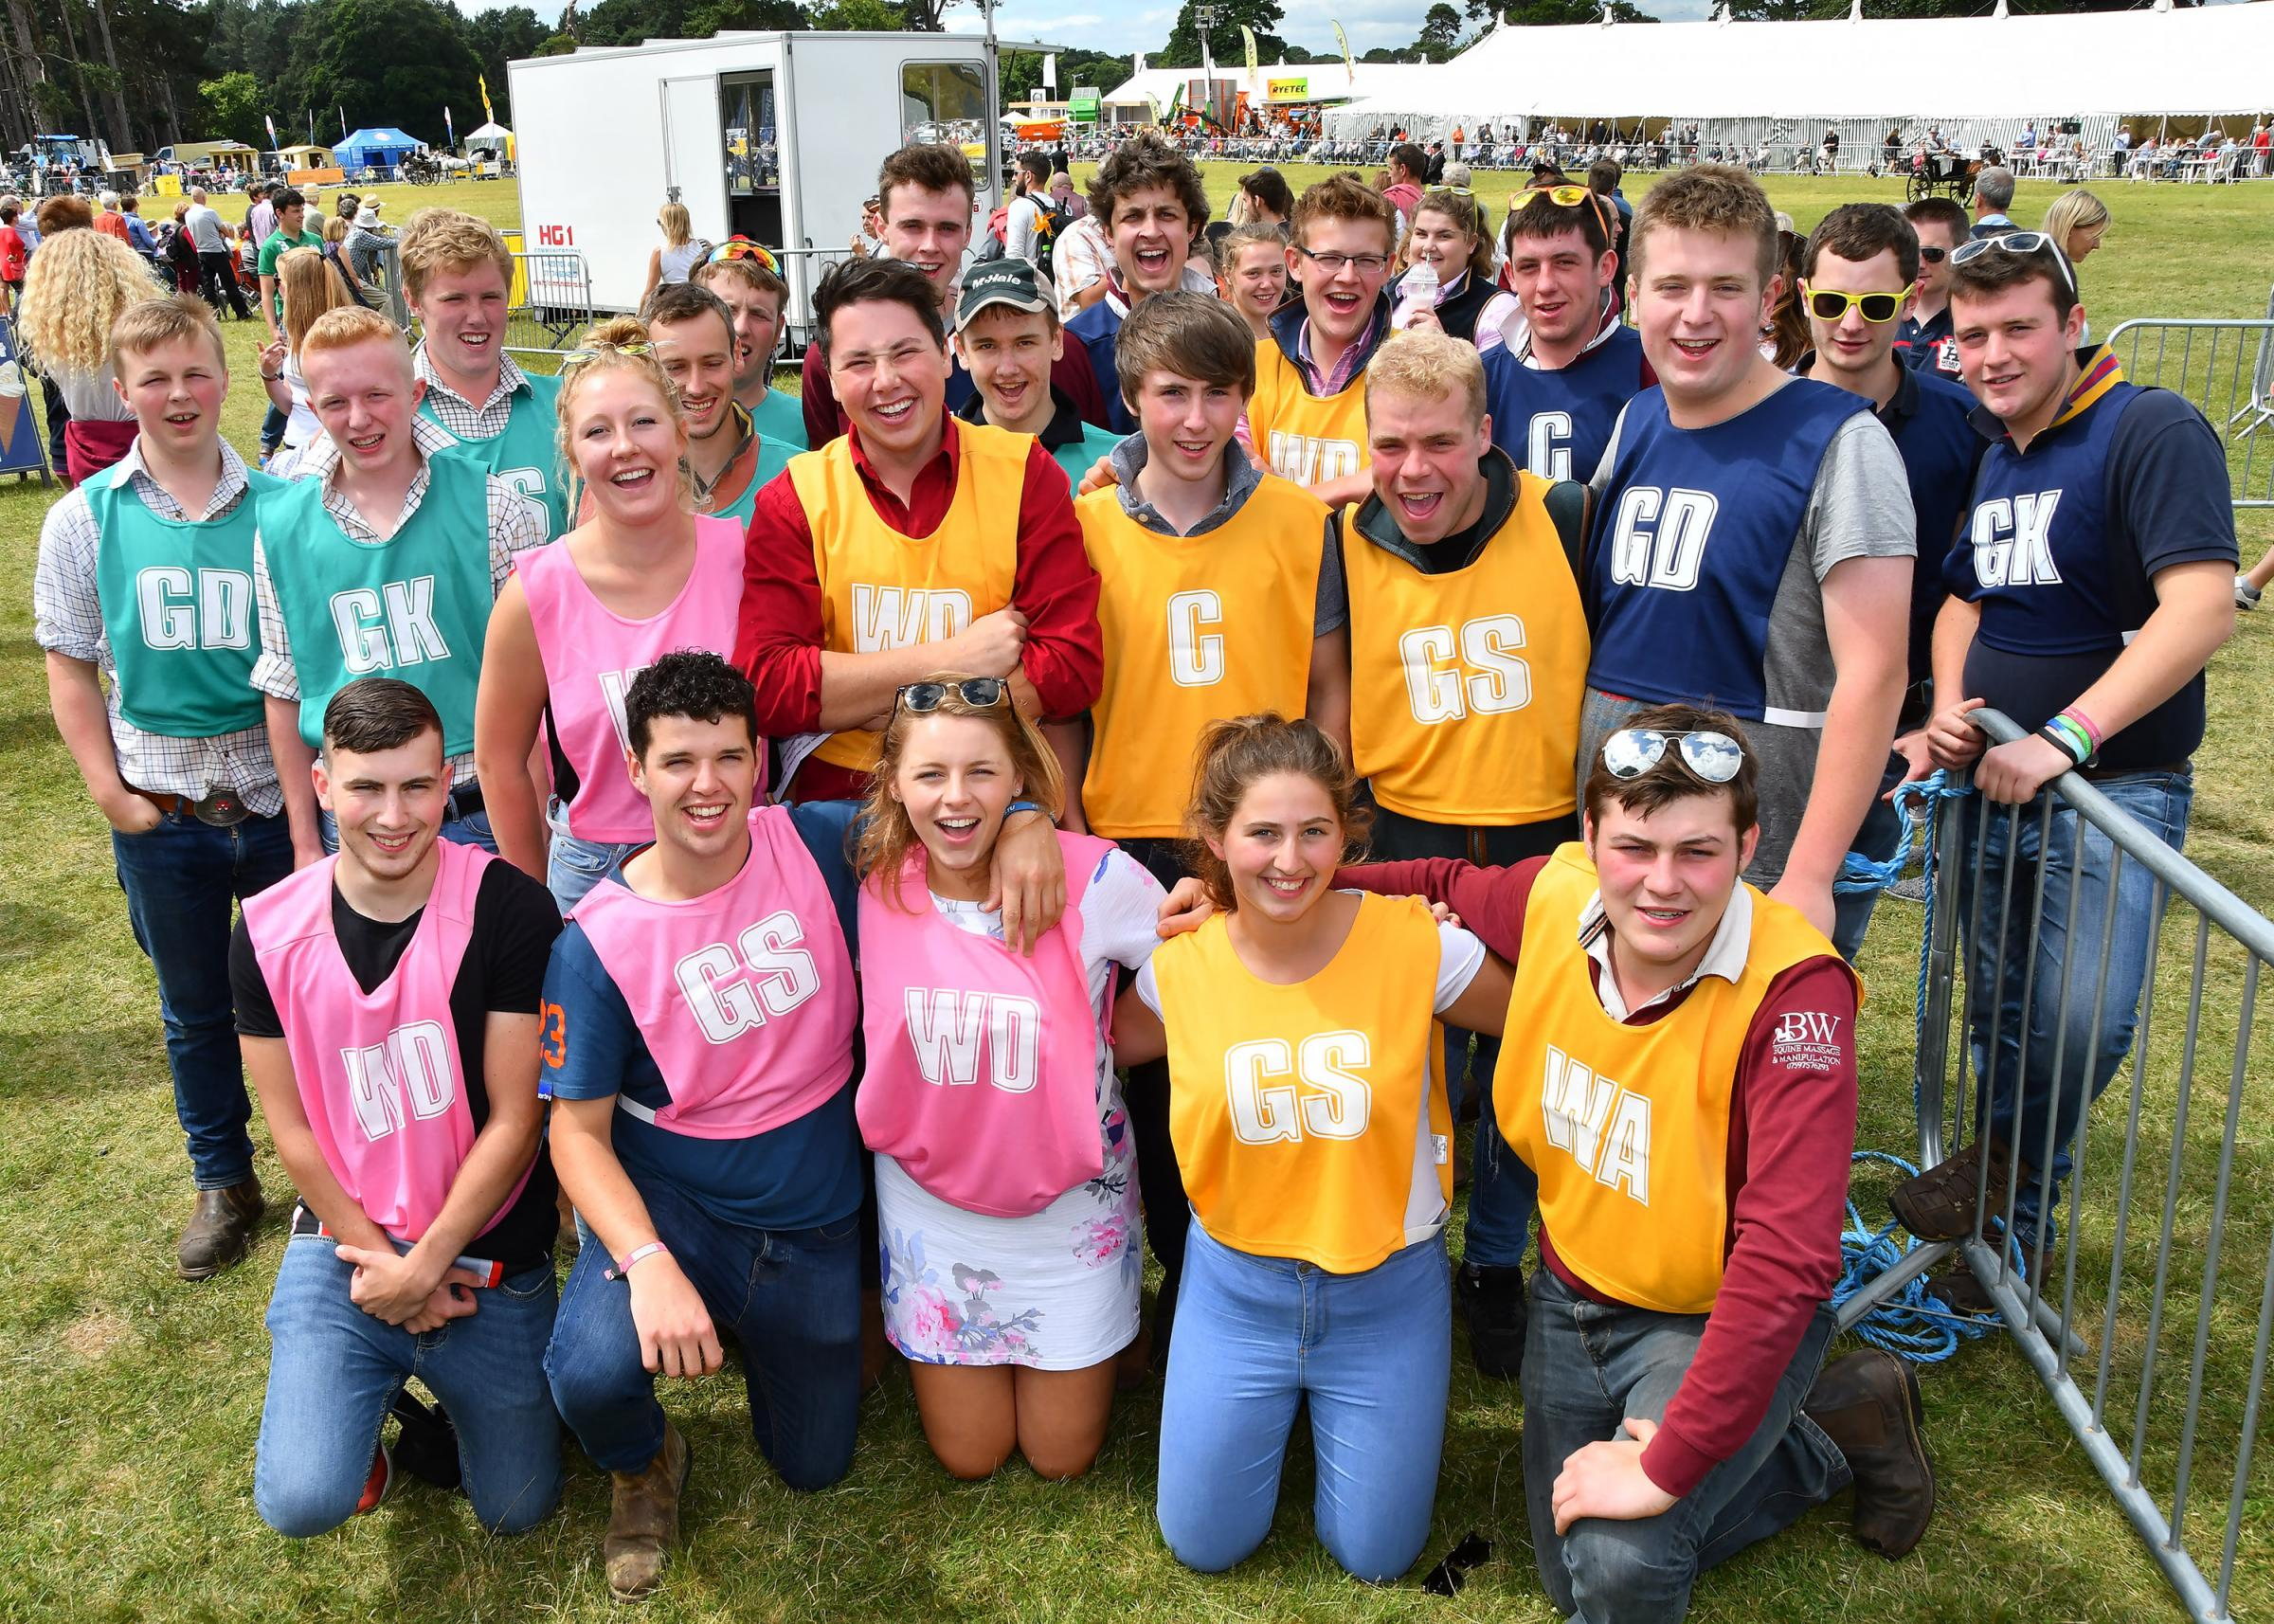 Members of Ryedale's young farmers clubs (YFC) competed in a series of games from welly-waning to bale tossing